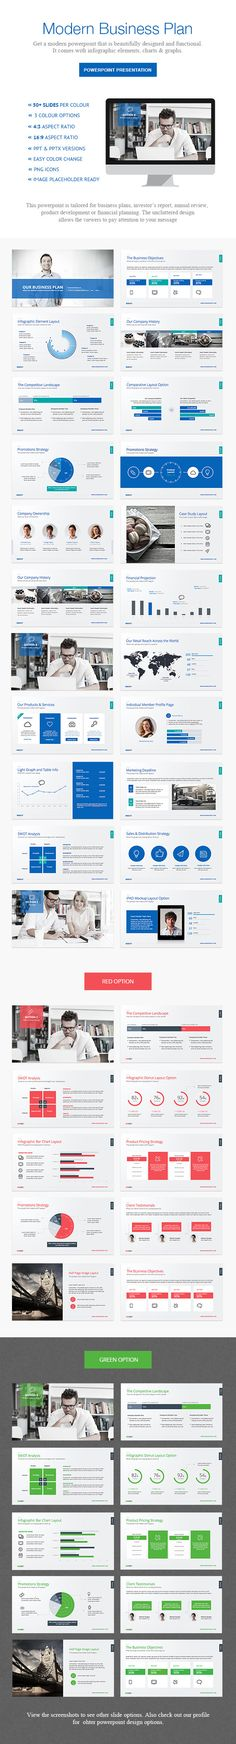 Business Plan Powerpoint PowerPoint Template / Theme / Presentation / Slides / Background / Power Point #powerpoint #template #theme